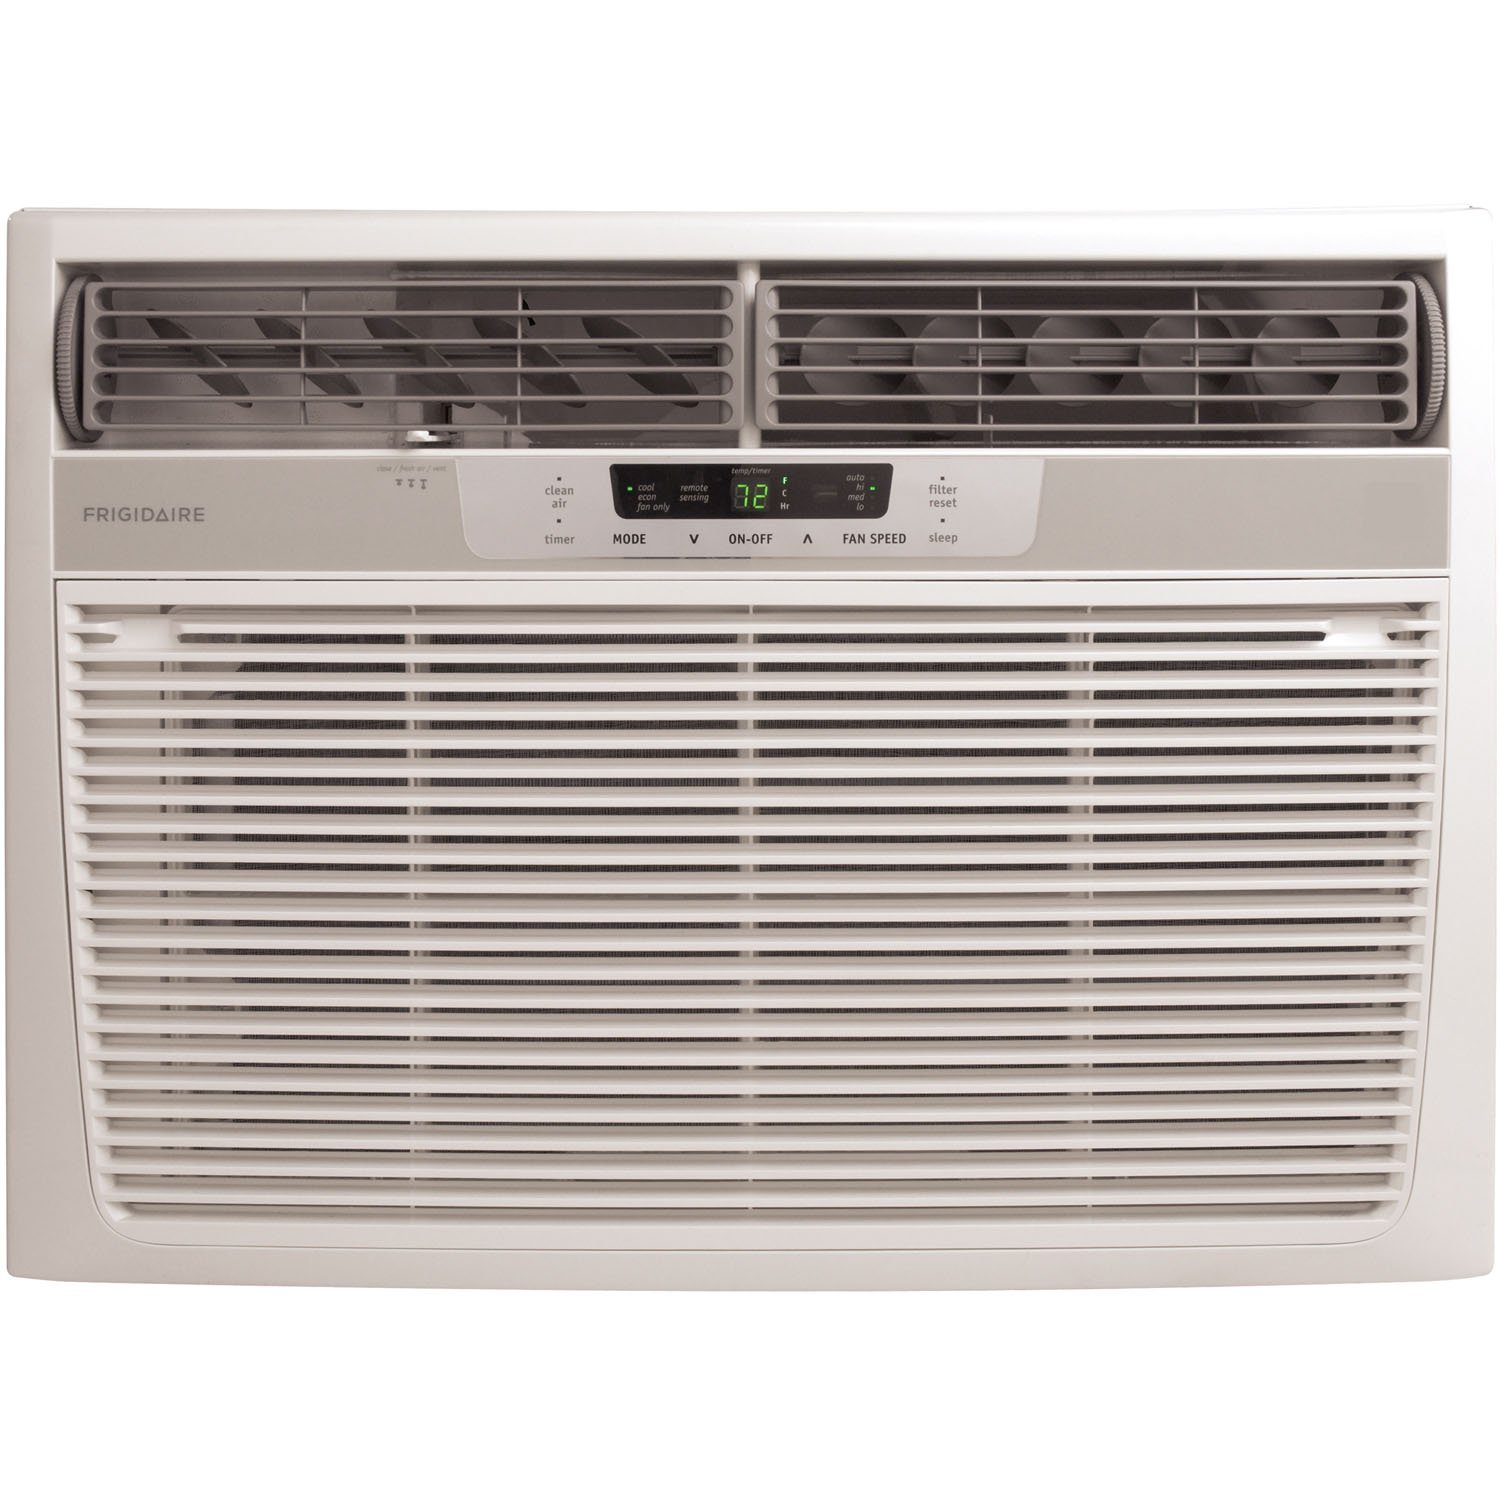 Amazon.com: Frigidaire FRA156MT1 15,100 BTU Window-Mounted Median Room Air  Conditioner: Home & Kitchen